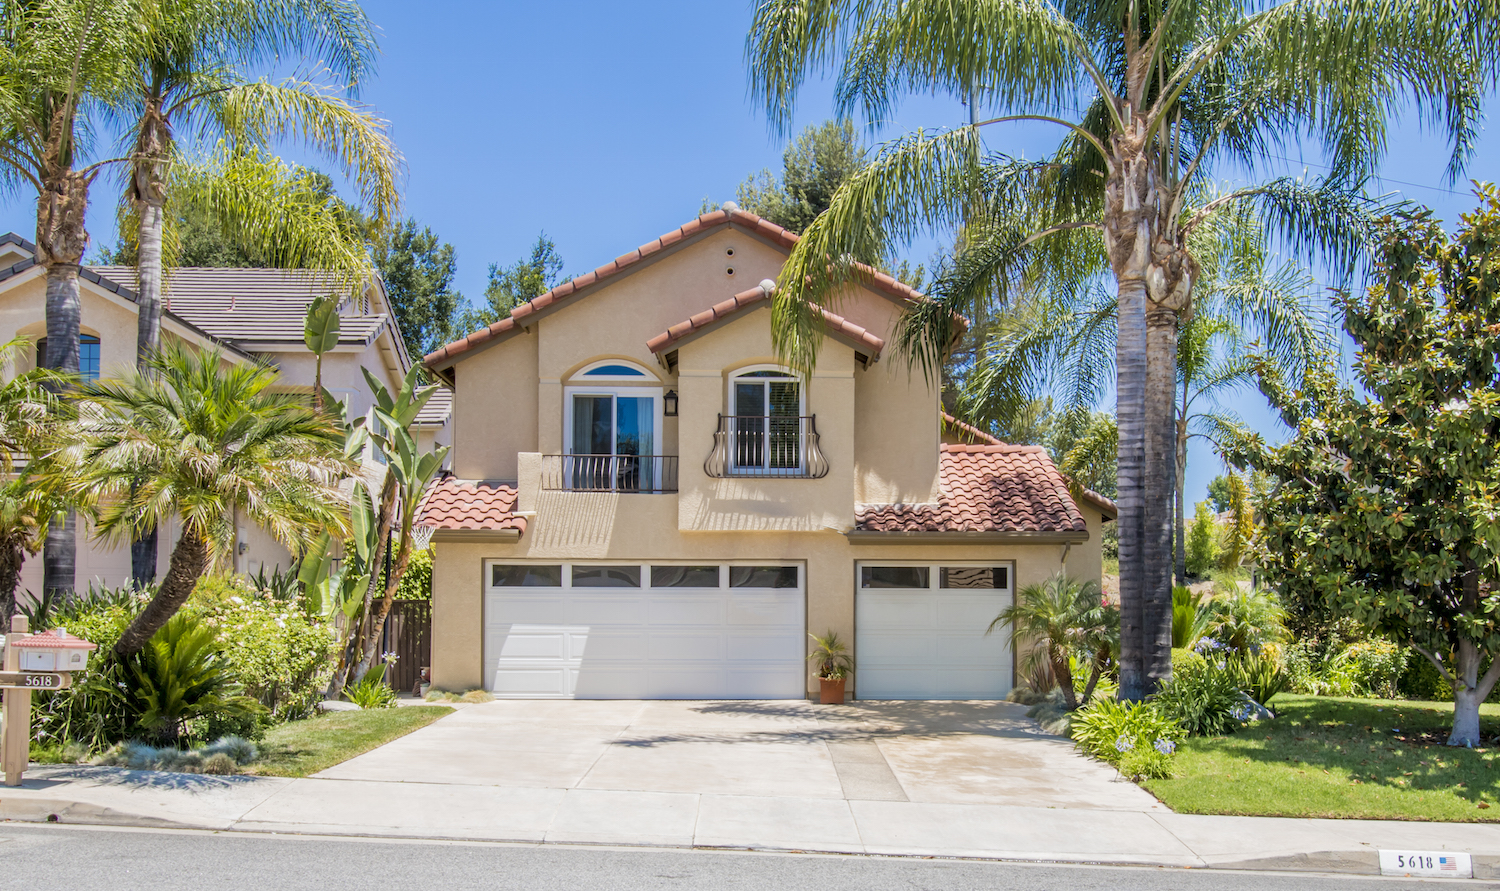 5618 Silver Valley Ave. Agoura Hills